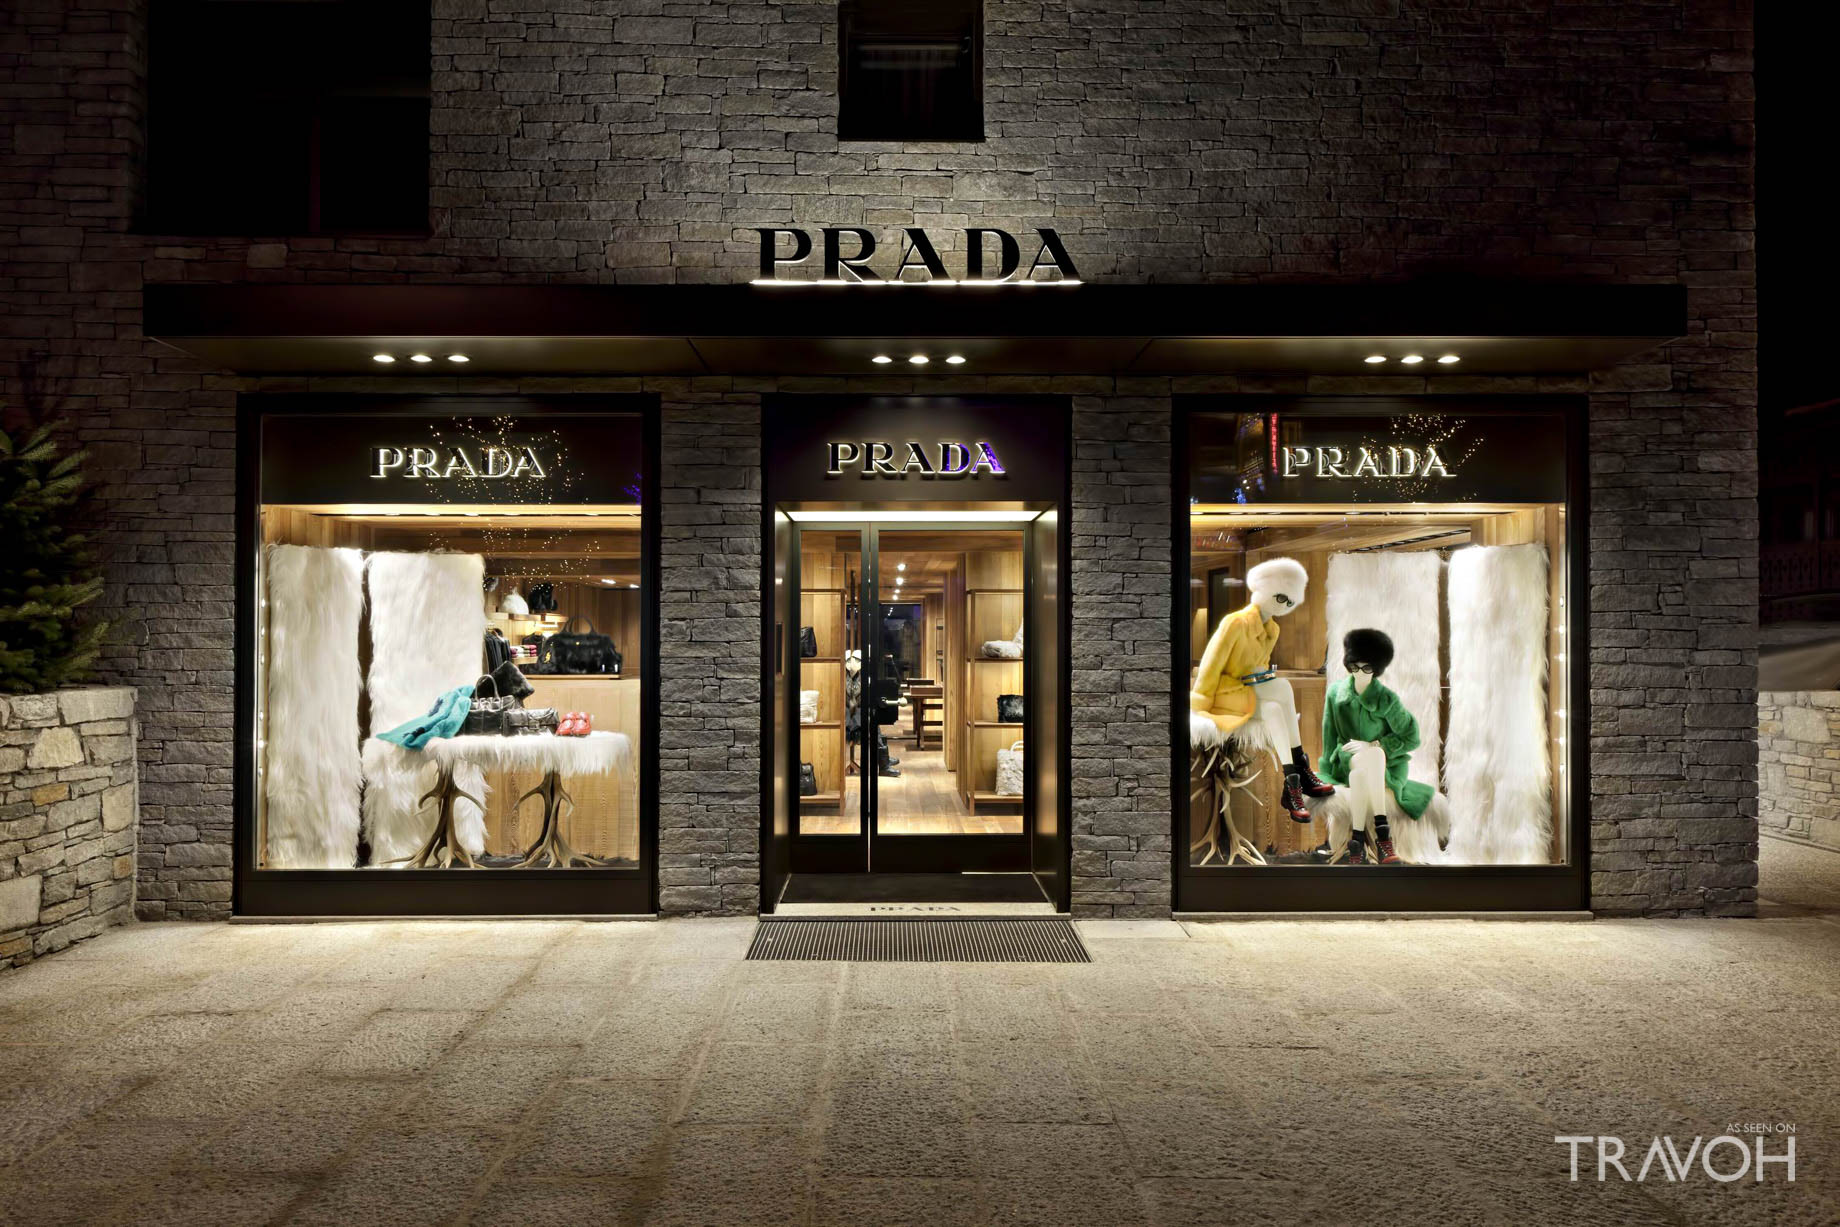 Prada Retail Store - The 10 Best Off-Piste Winter Activities in Courchevel, France